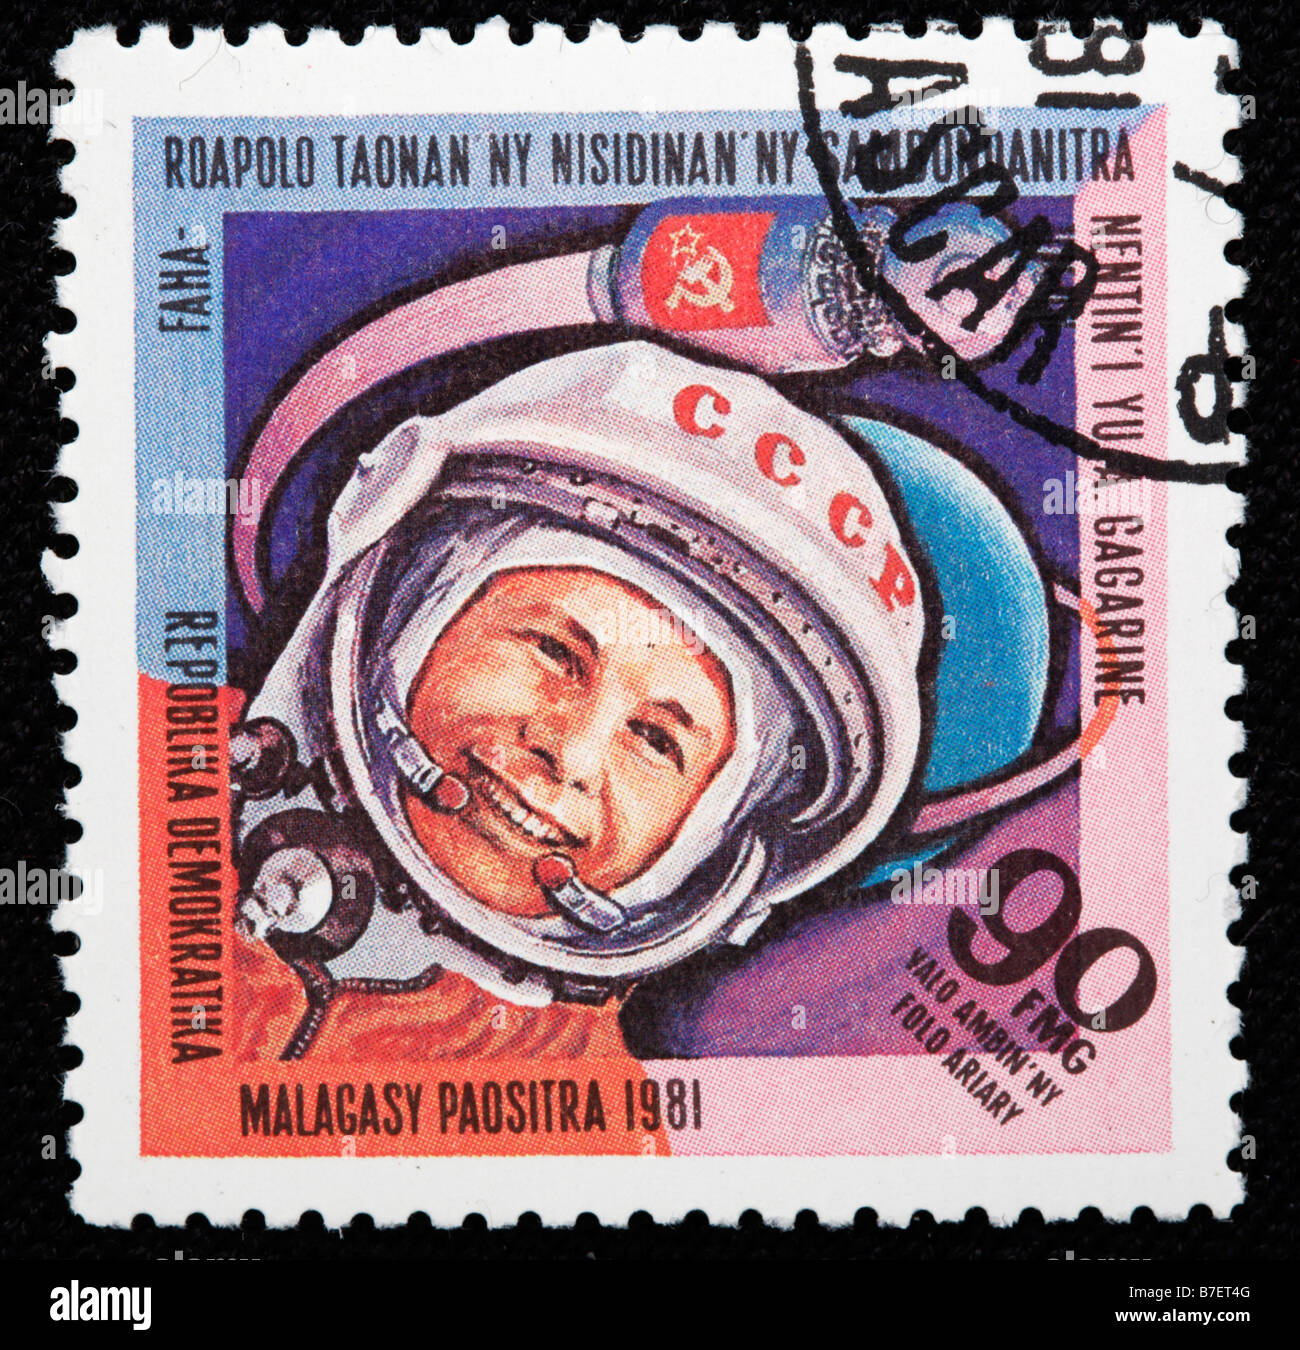 First flight into space by Yuri Gagarin, postage stamp, Malagasy, 1981 - Stock Image